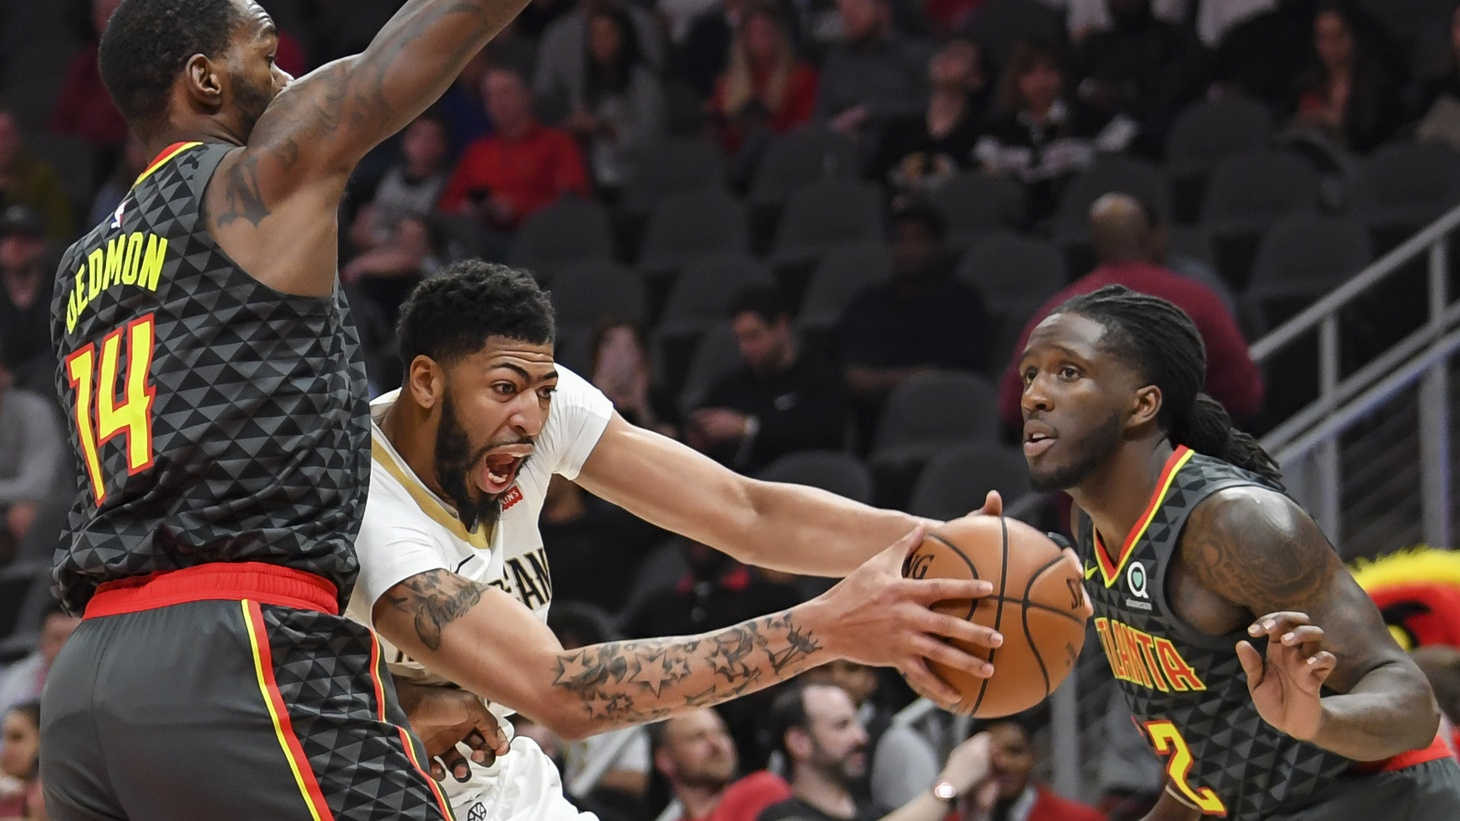 New Orleans Pelicans forward Anthony Davis (23) controls the ball between Atlanta Hawks center Dewayne Dedmon (14) and forward Taurean Prince (12) during the first half at State Farm Arena. Mar 10, 2019; Atlanta, GA, USA.